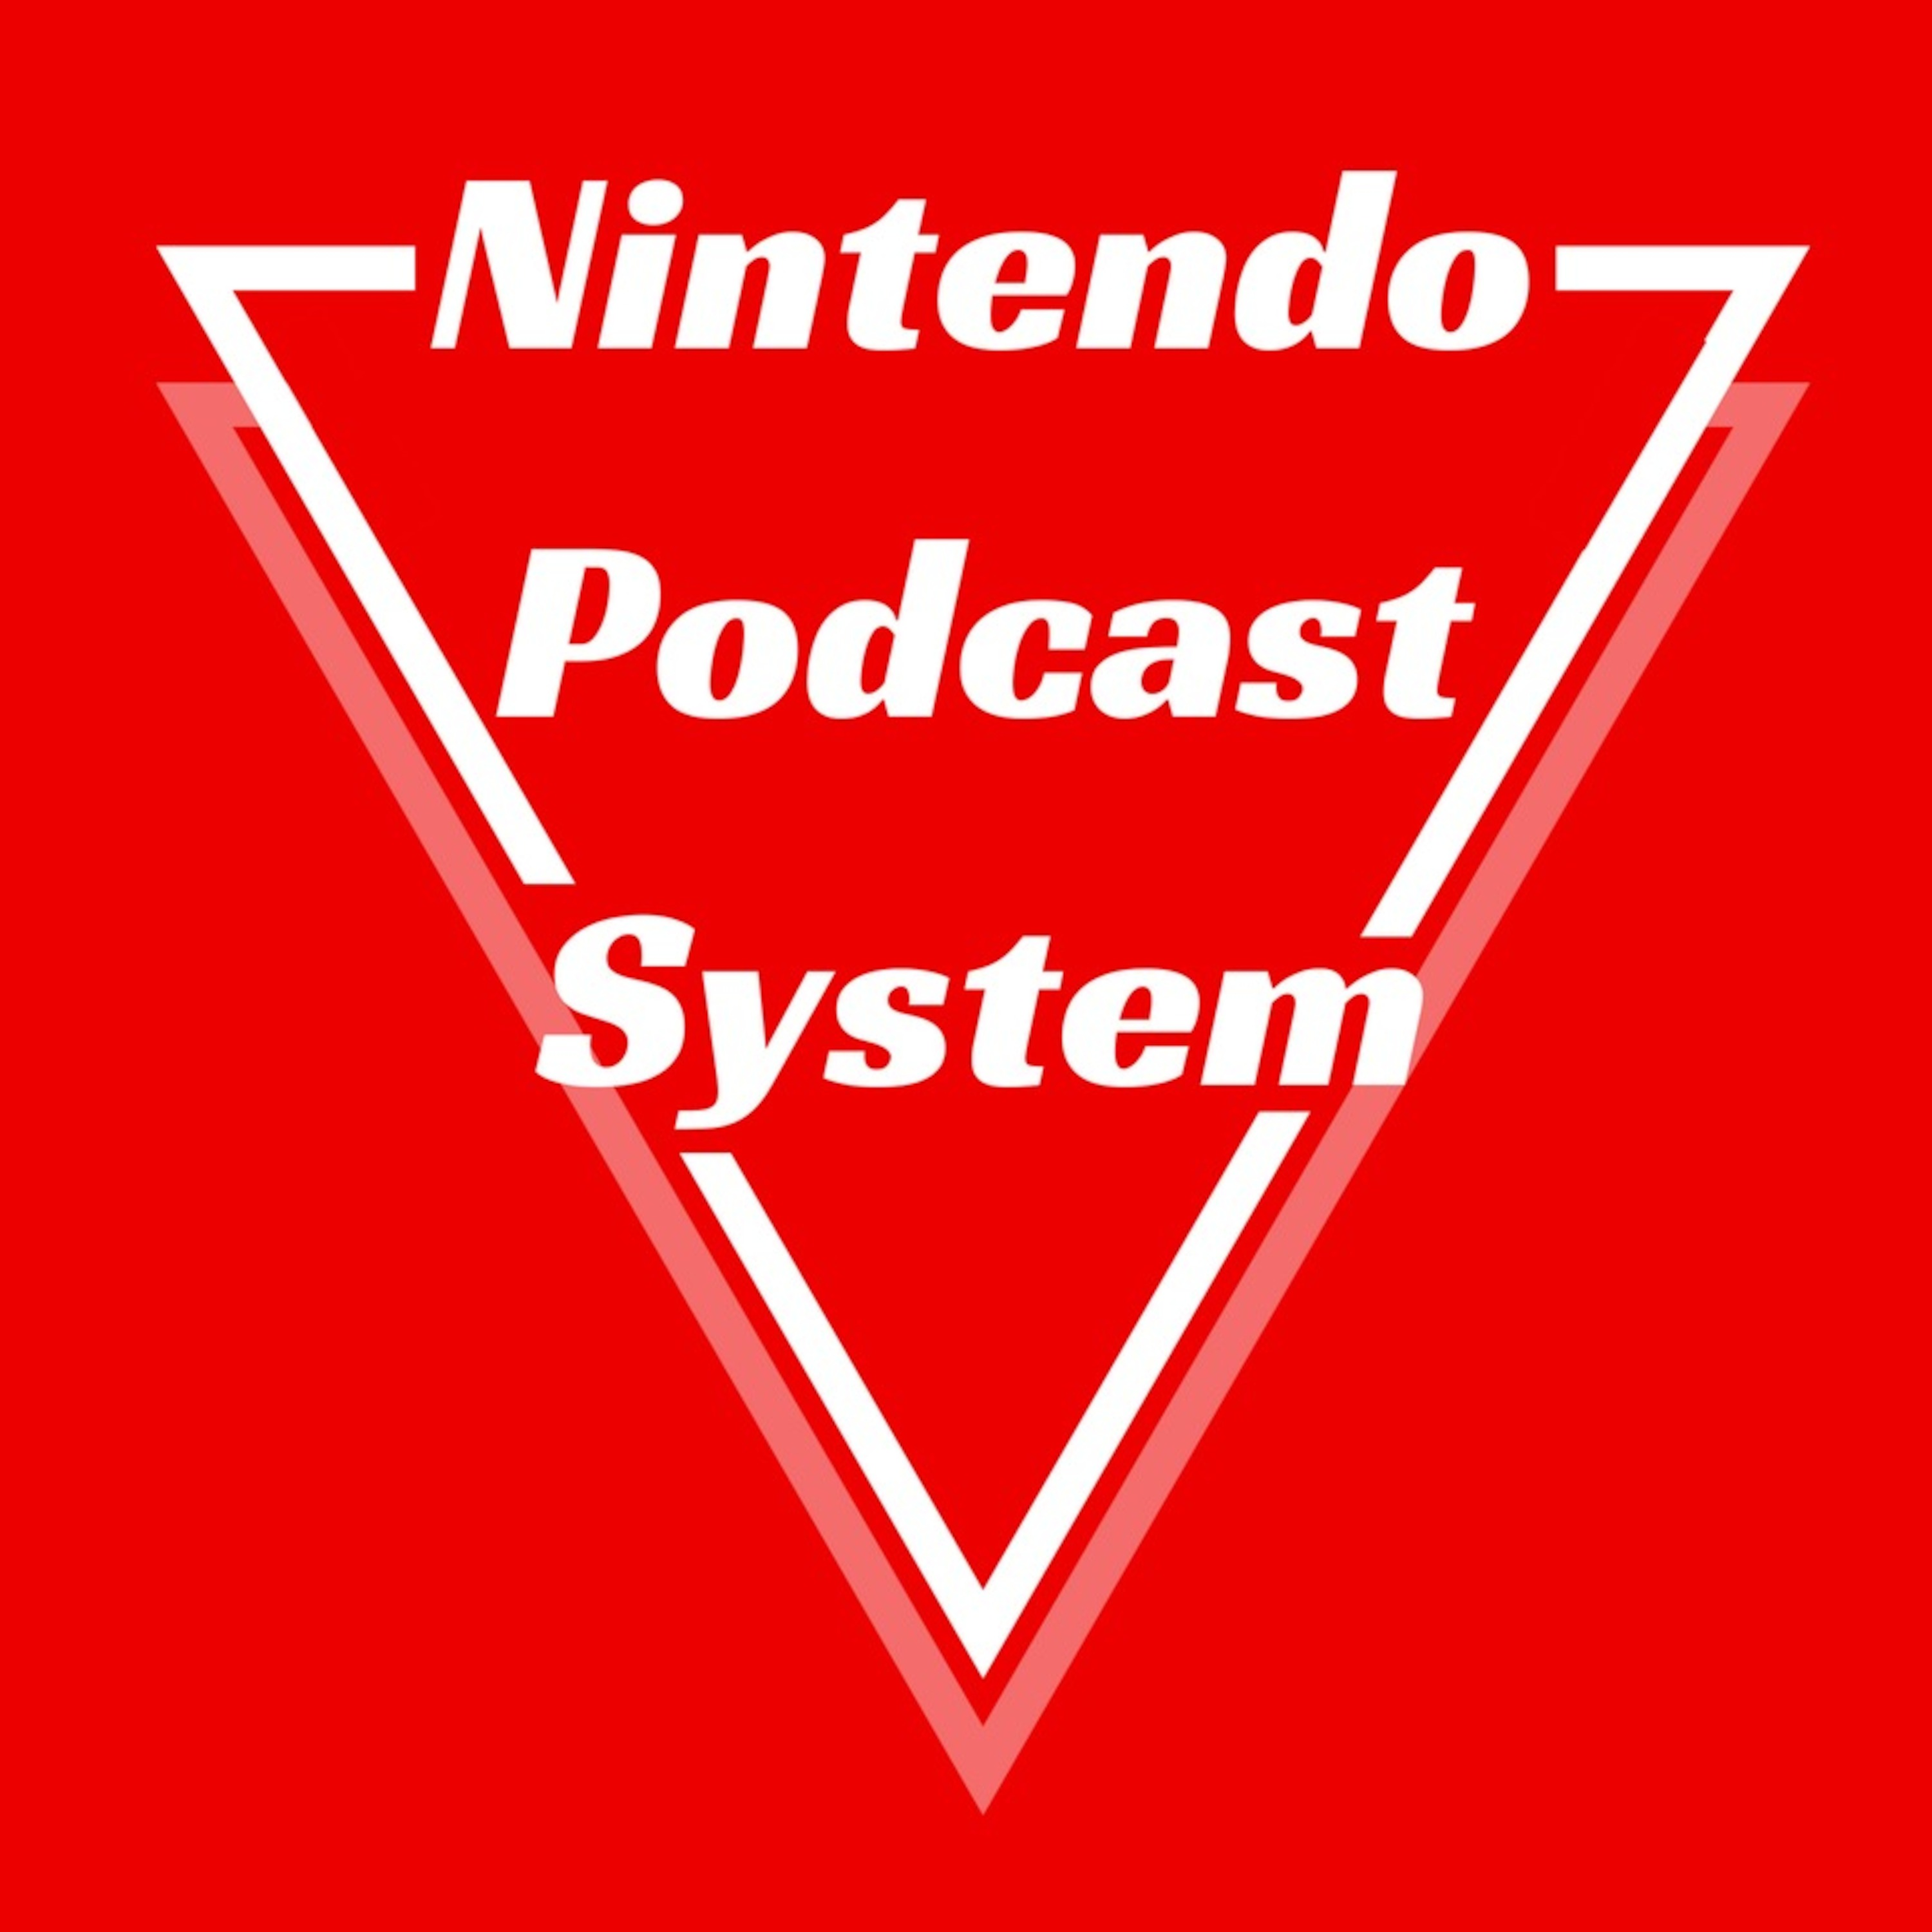 Nintendo Podcast System Ep. 63 - Counting the F-bombs